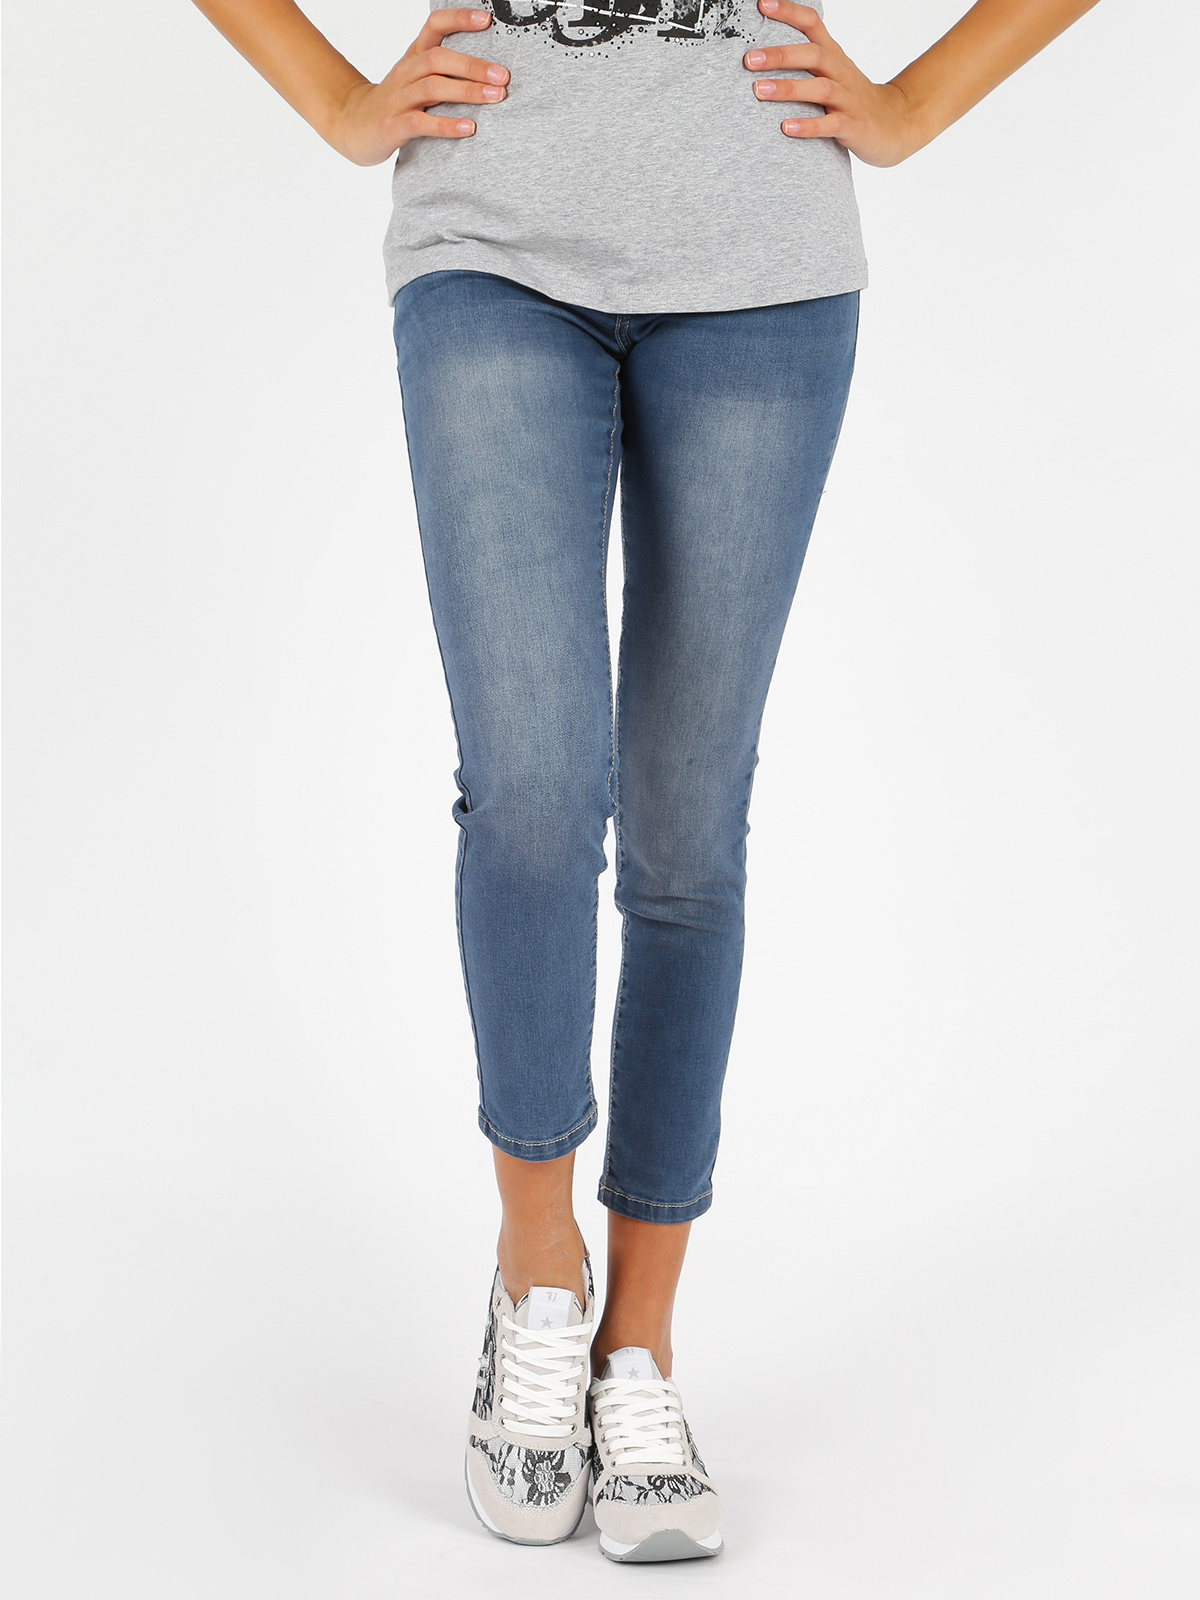 KISS & HUG Jeans Regular Fit